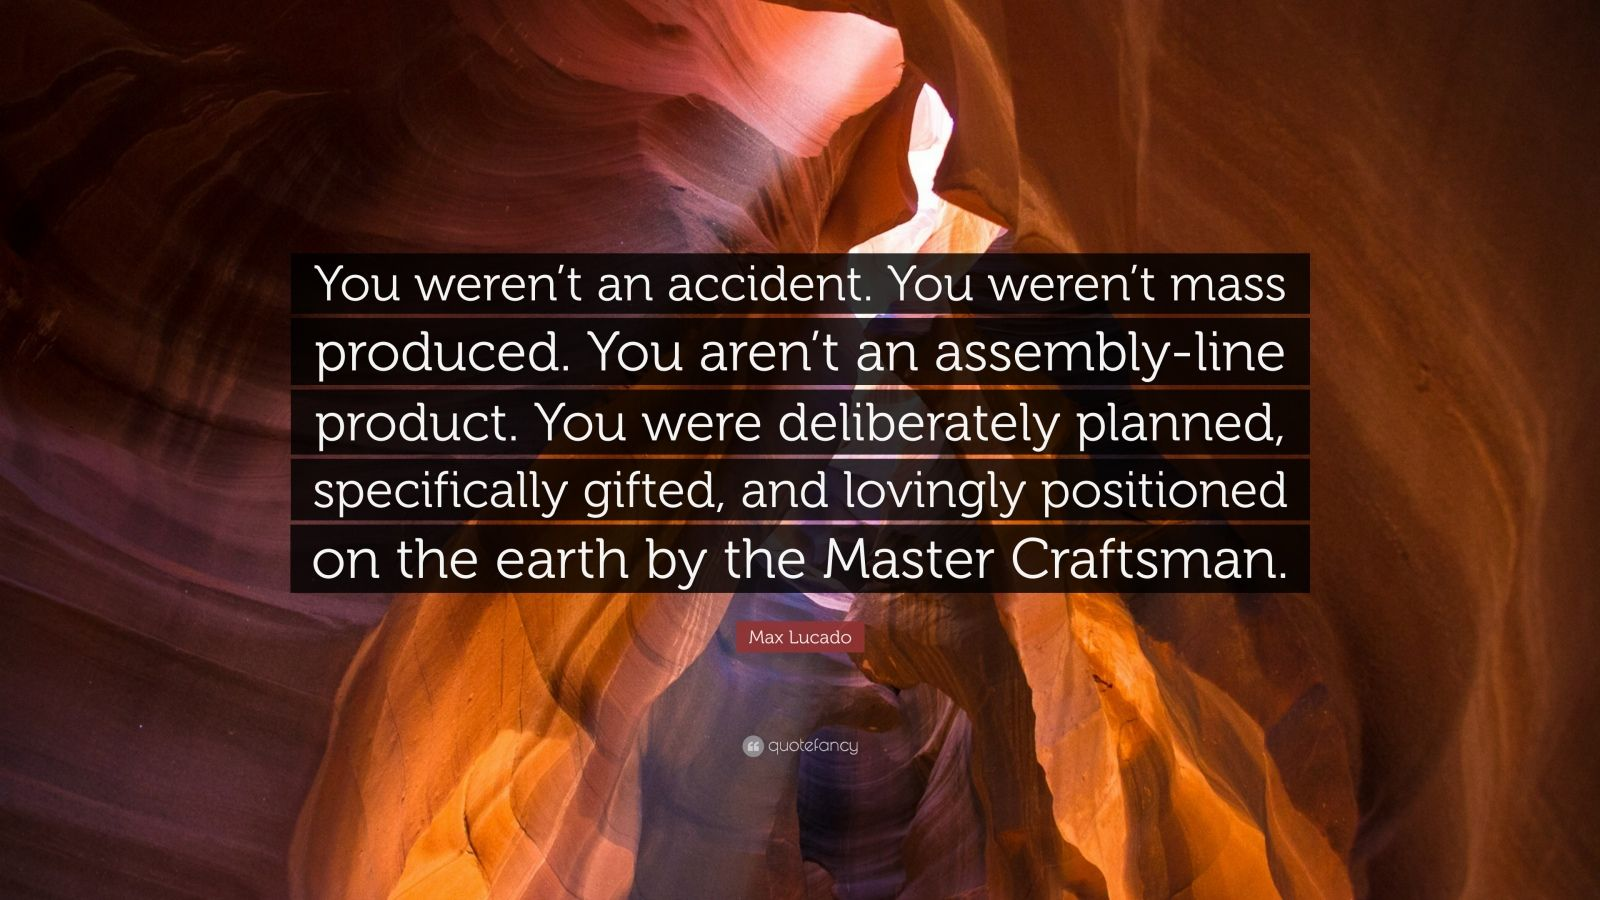 "Max Lucado Quote: ""You weren't an accident. You weren't mass produced. You aren't an assembly-line product. You were deliberately planned, specifically gifted, and lovingly positioned on the earth by the Master Craftsman."""